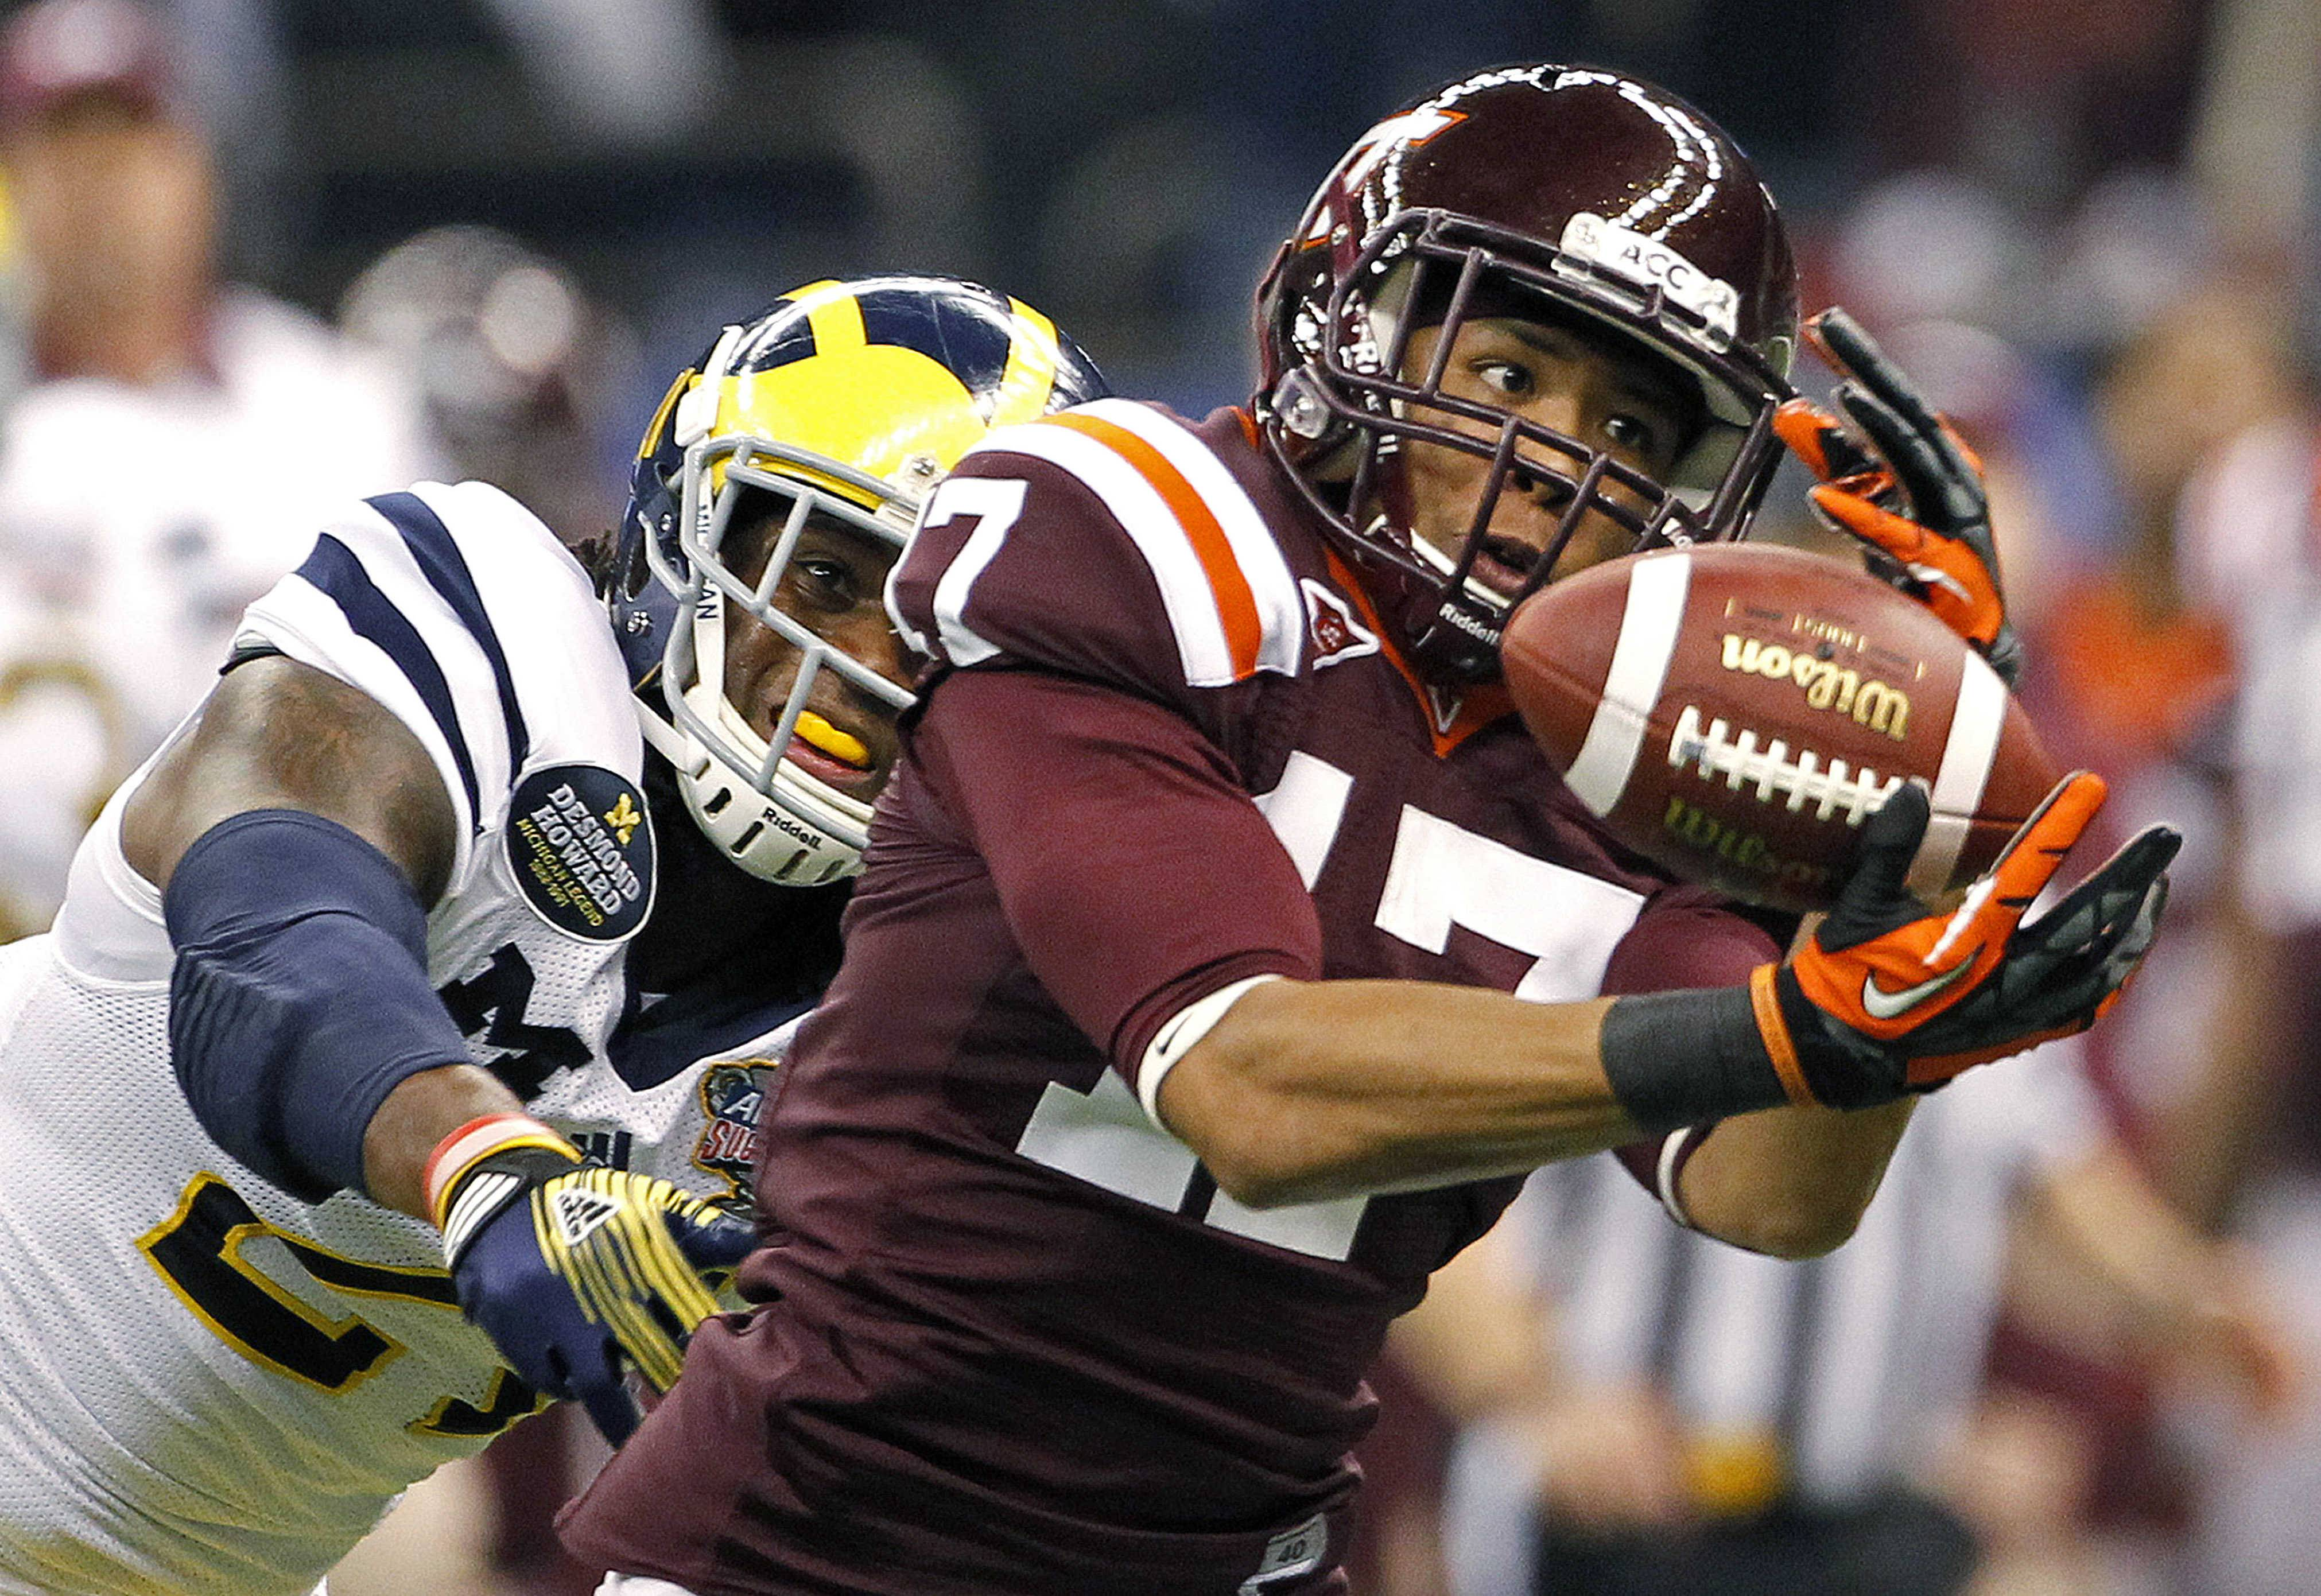 Virginia Tech cornerback Kyle Fuller (17) intercepts a pass intended for Michigan wide receiver Junior Hemingway (21) during the first quarter of the Sugar Bowl NCAA college football game in New Orleans, Tuesday, Jan. 3, 2012.